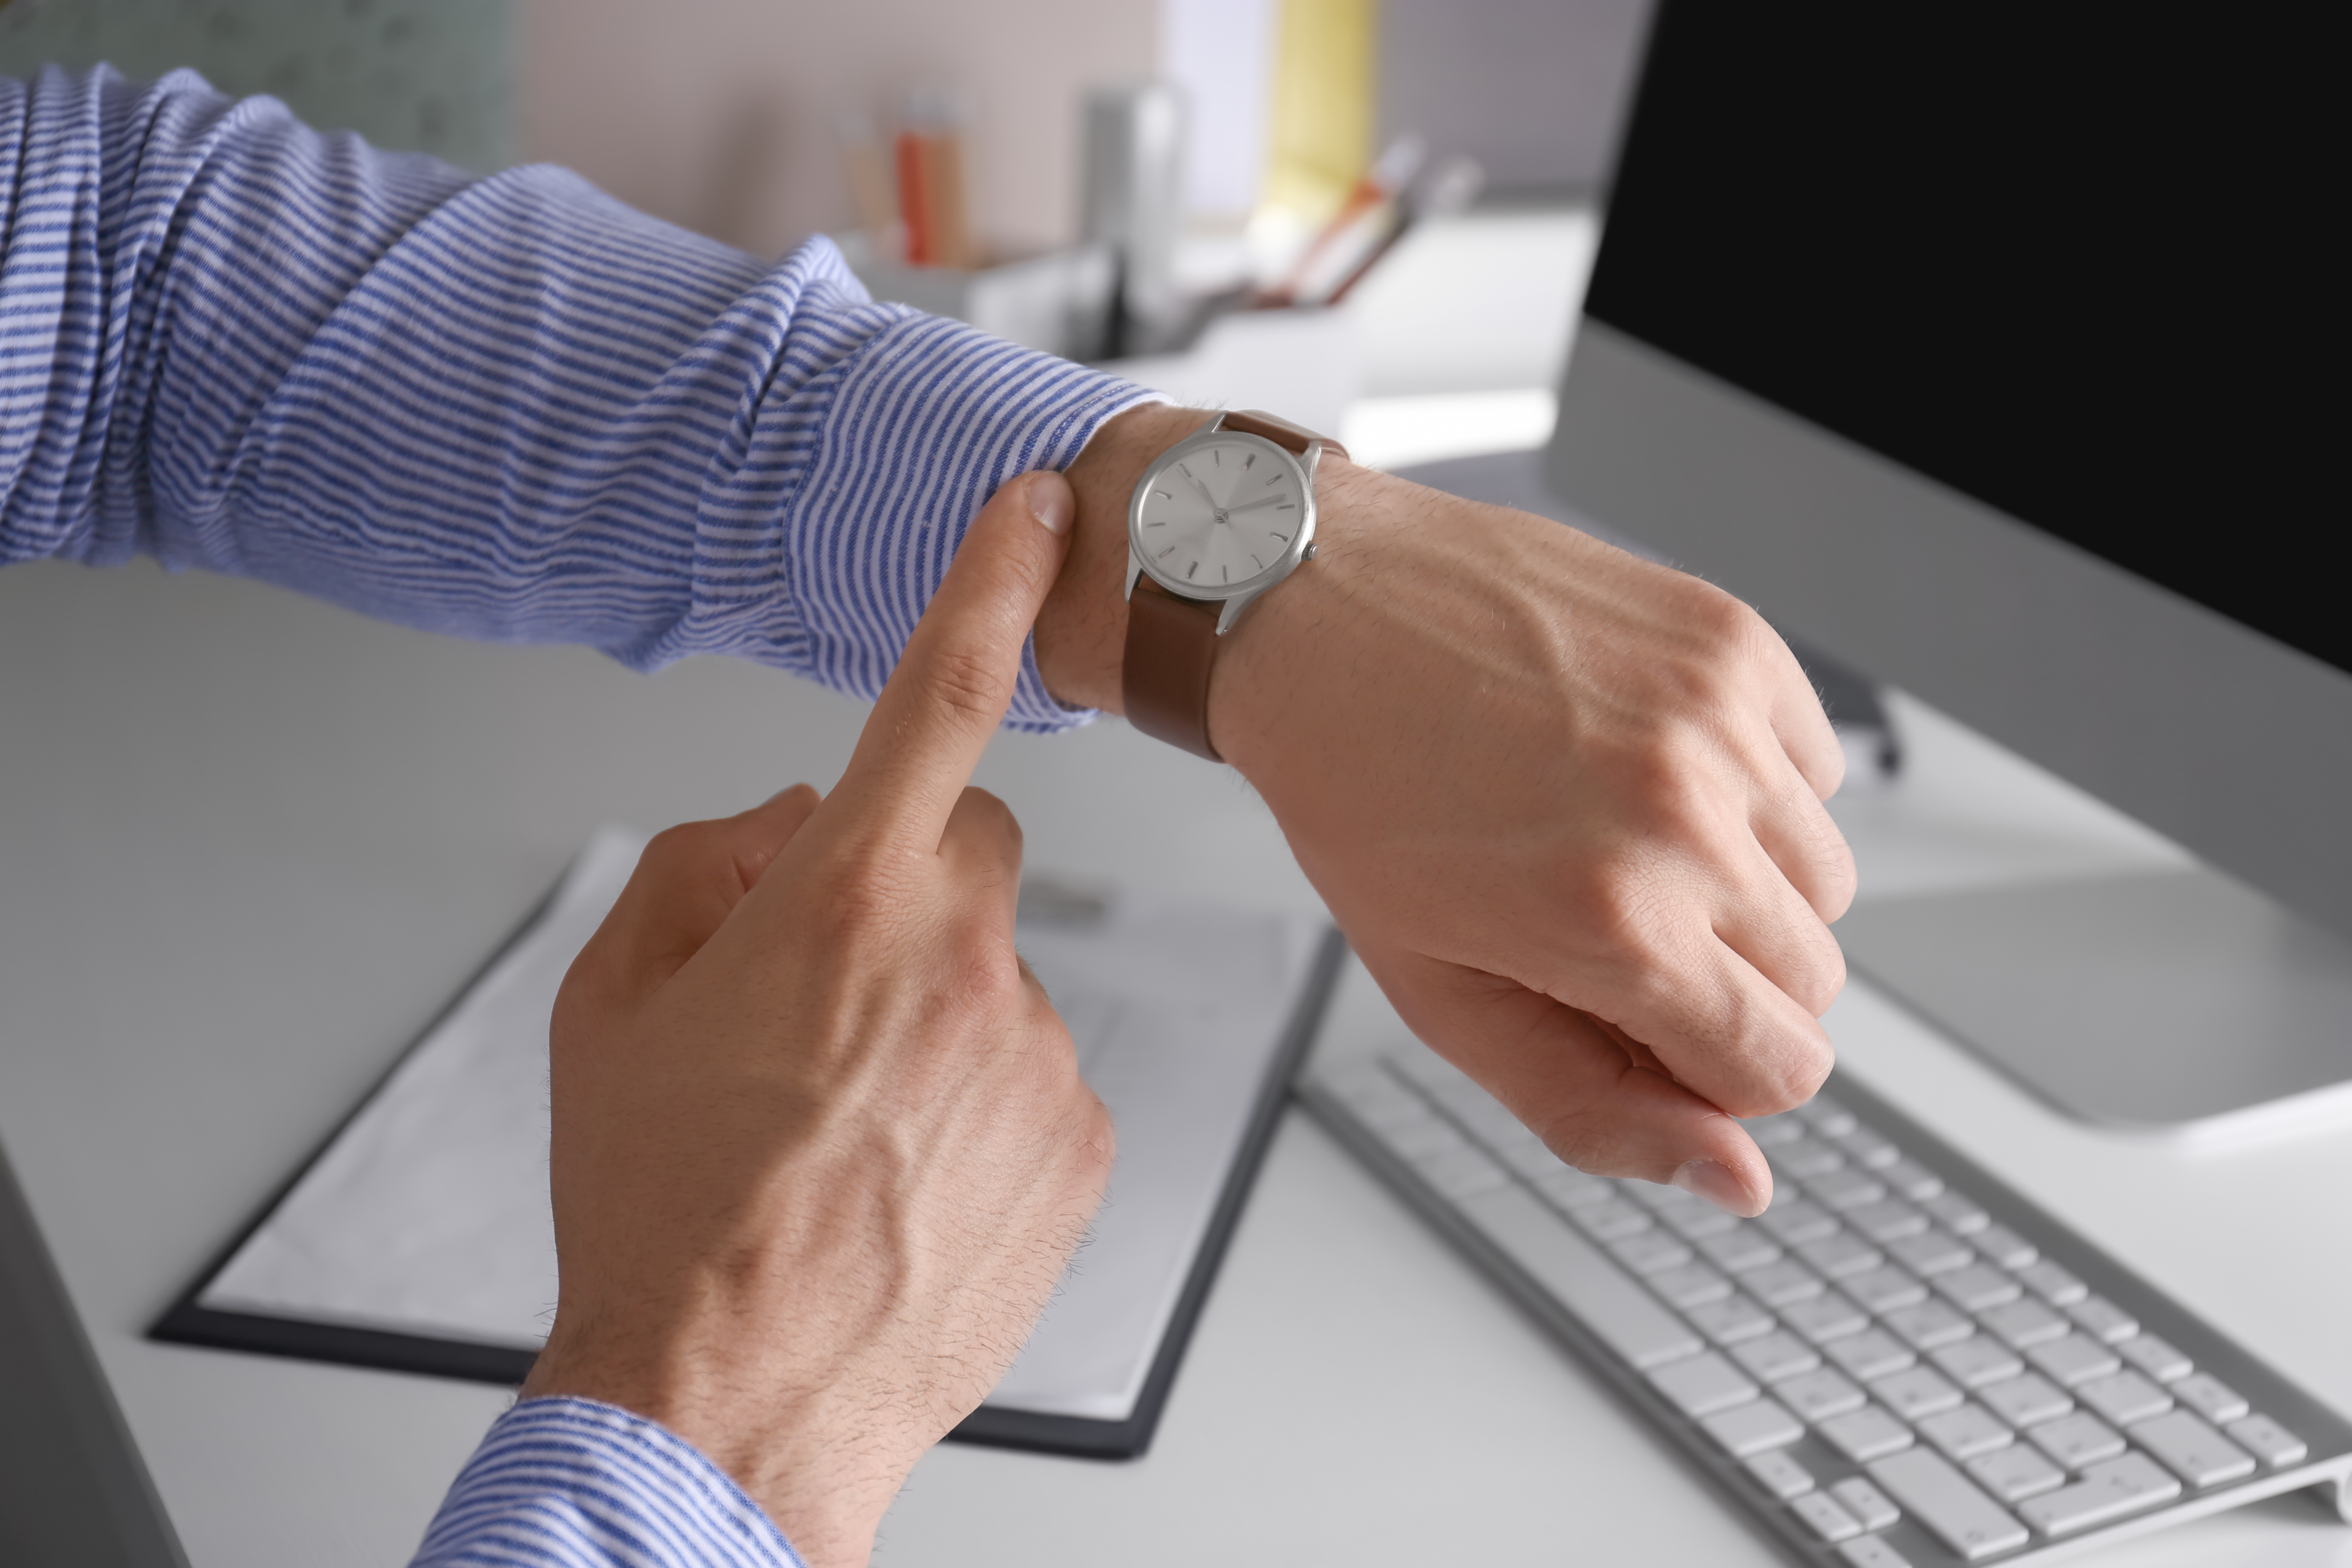 Young man checking time on his wristwatch at workplace